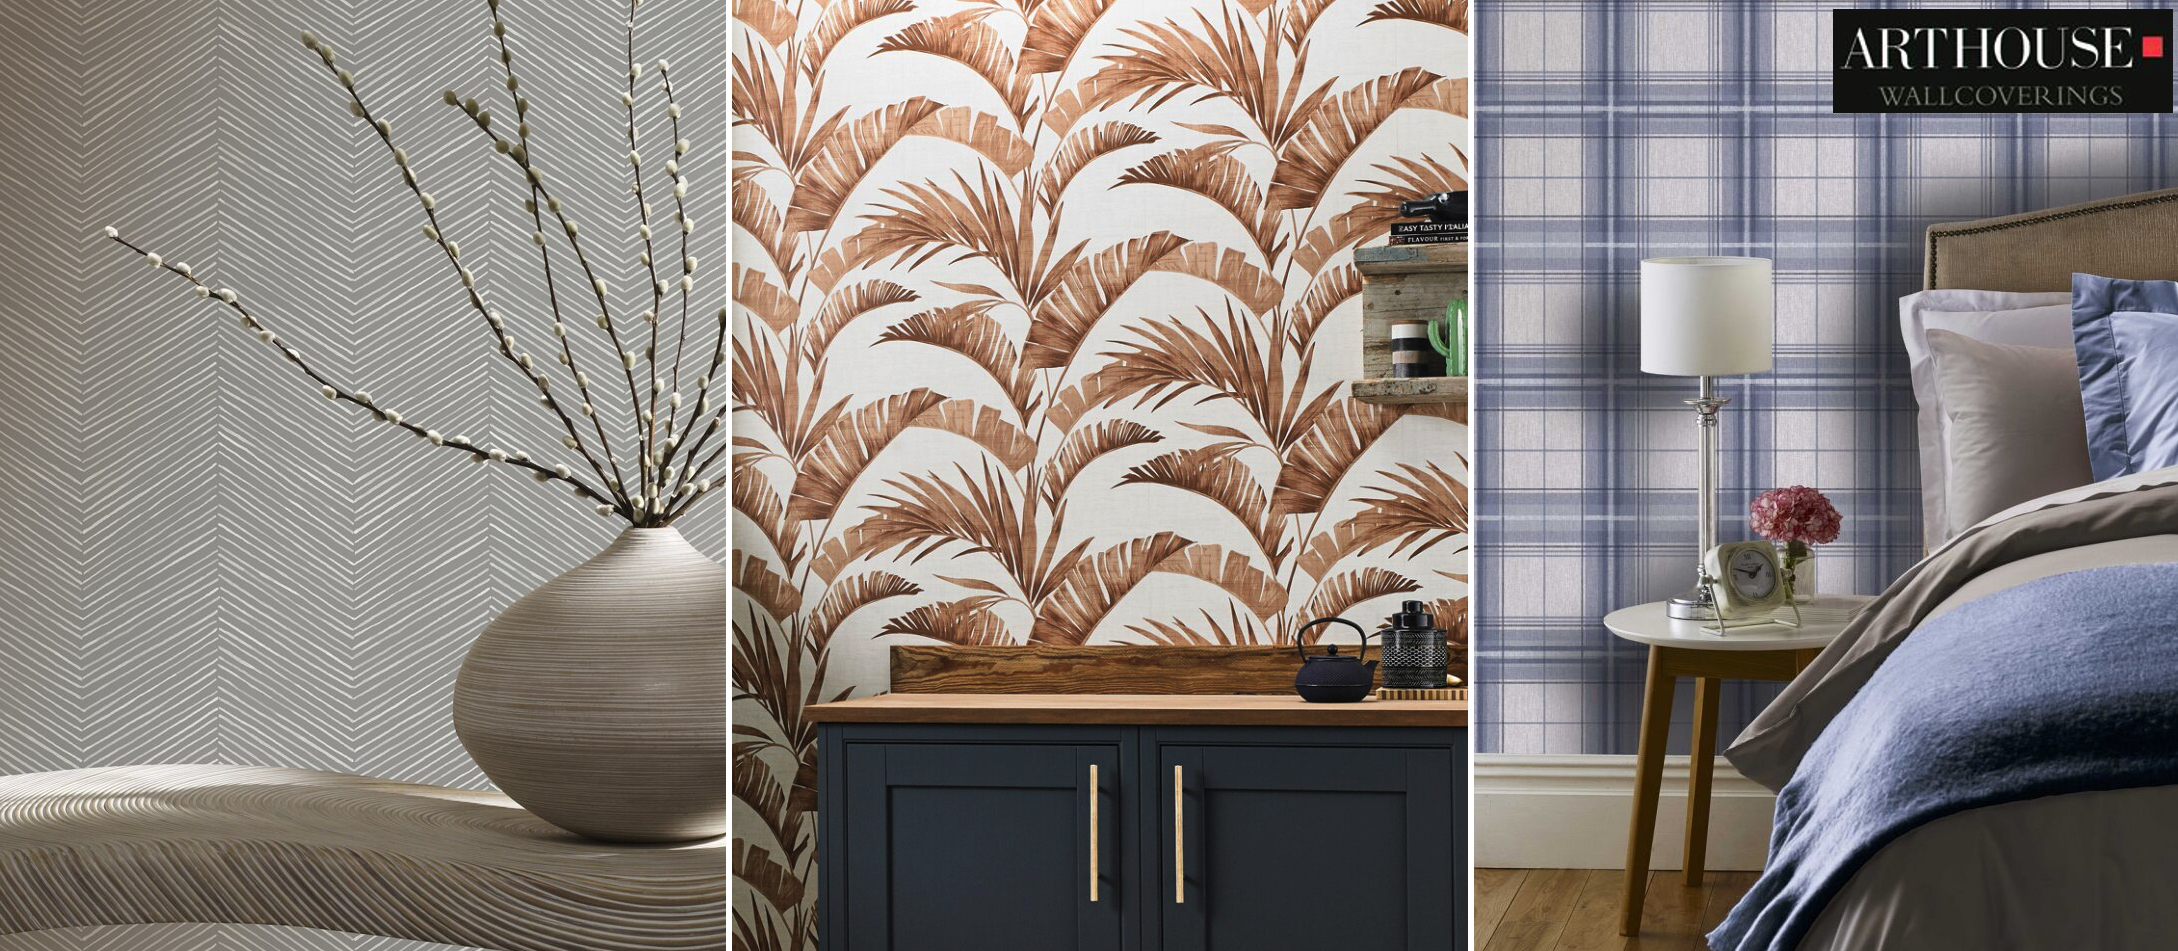 arthouse-wallcoverings.jpg